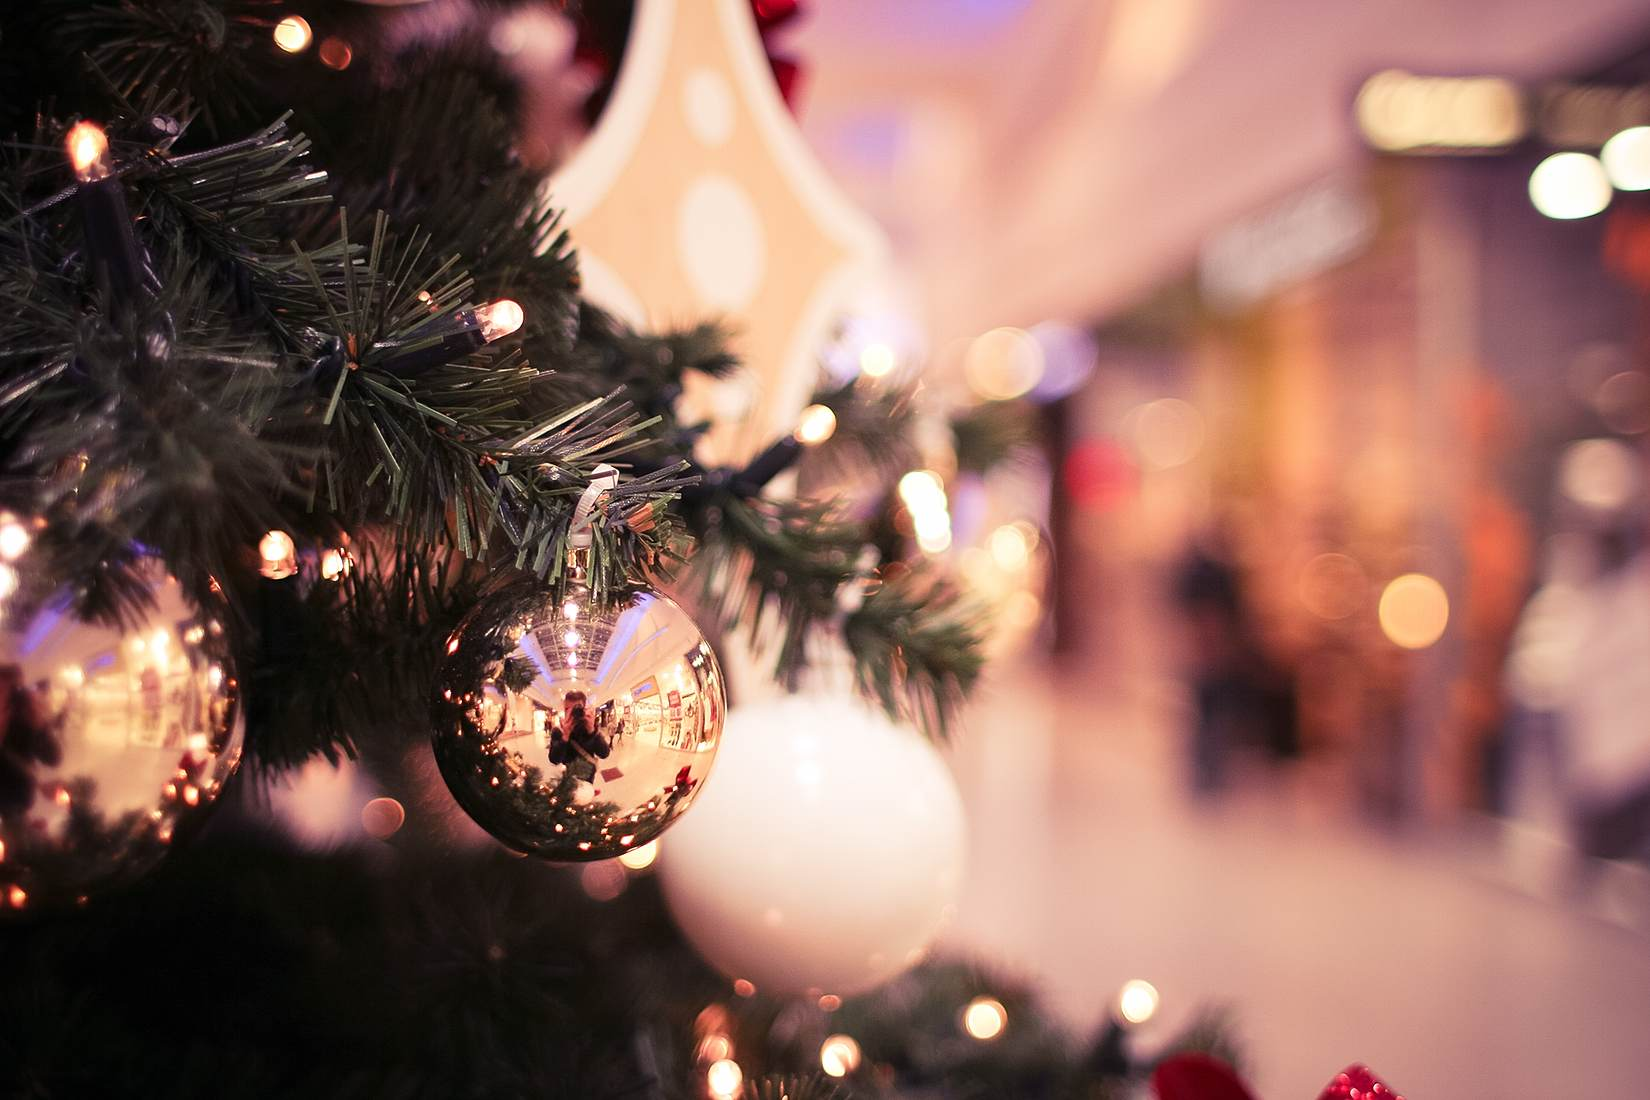 Let's face it. By the time New Year's here, many of us aren't just stressed, we're running out of funds. My 14 tips for saving money during the holidays.